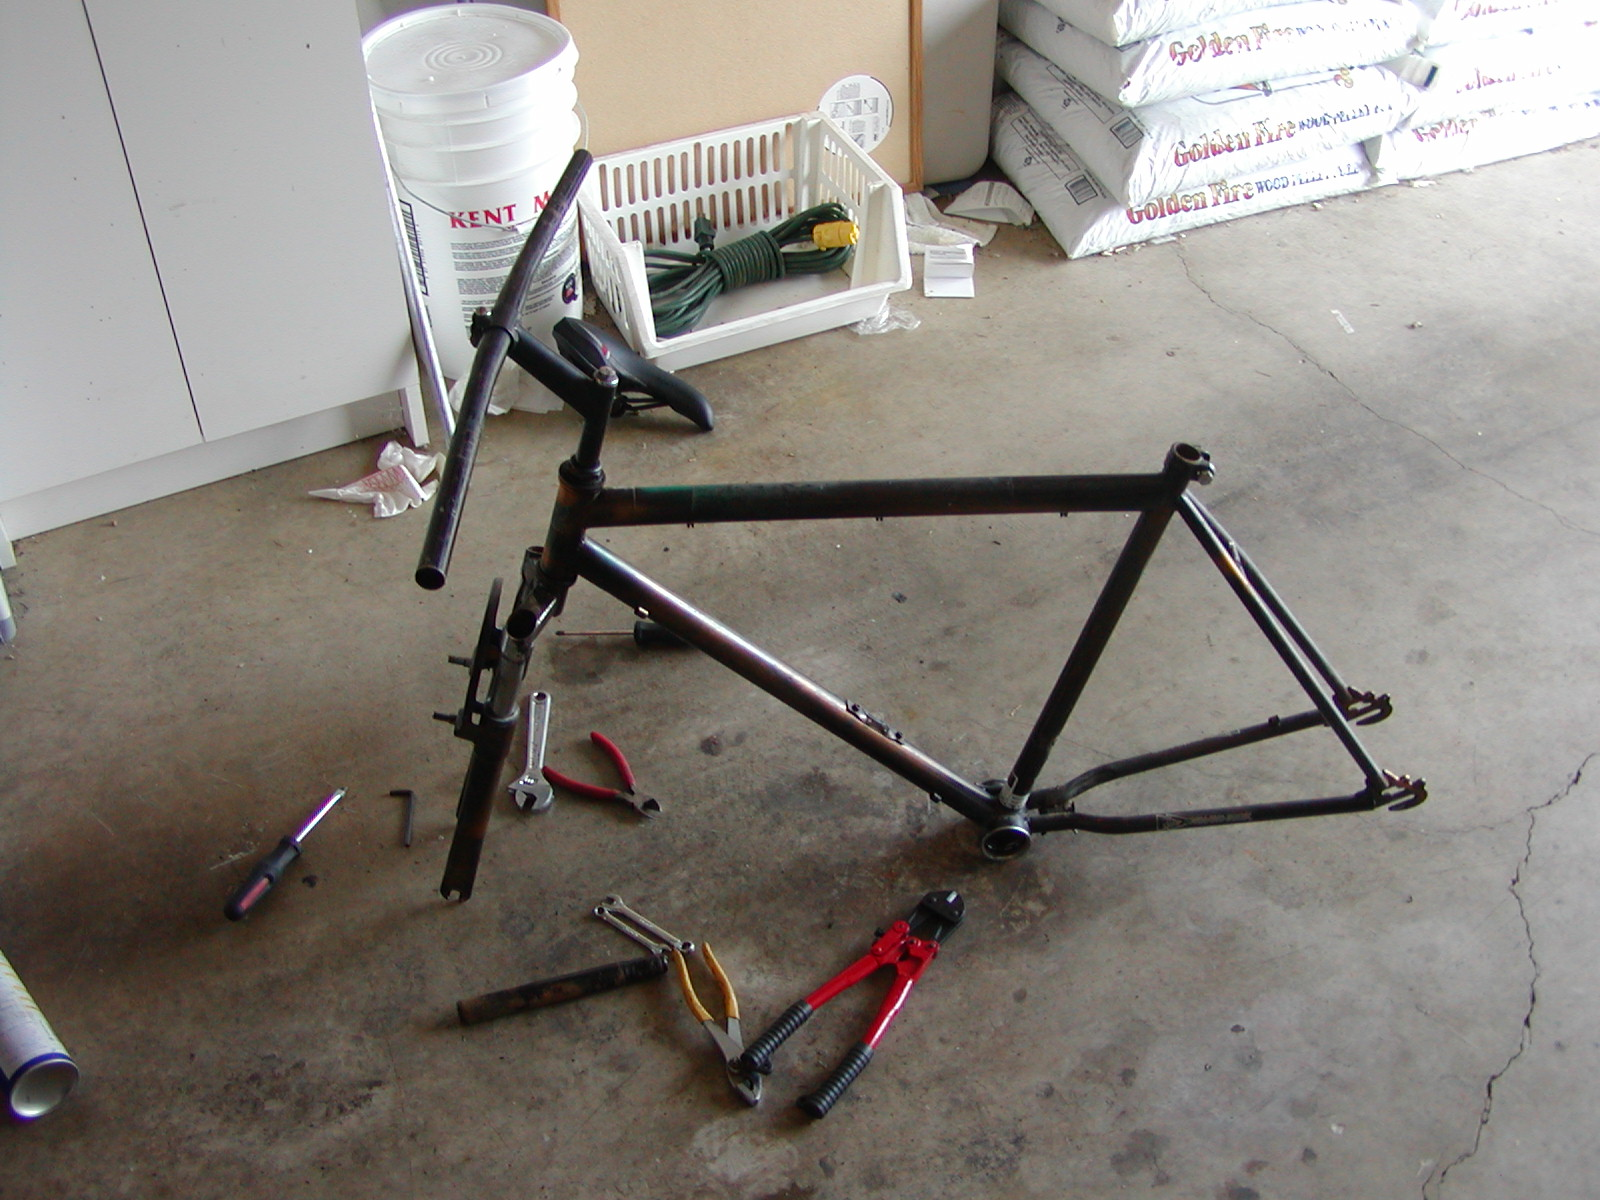 Repainting a bicycle